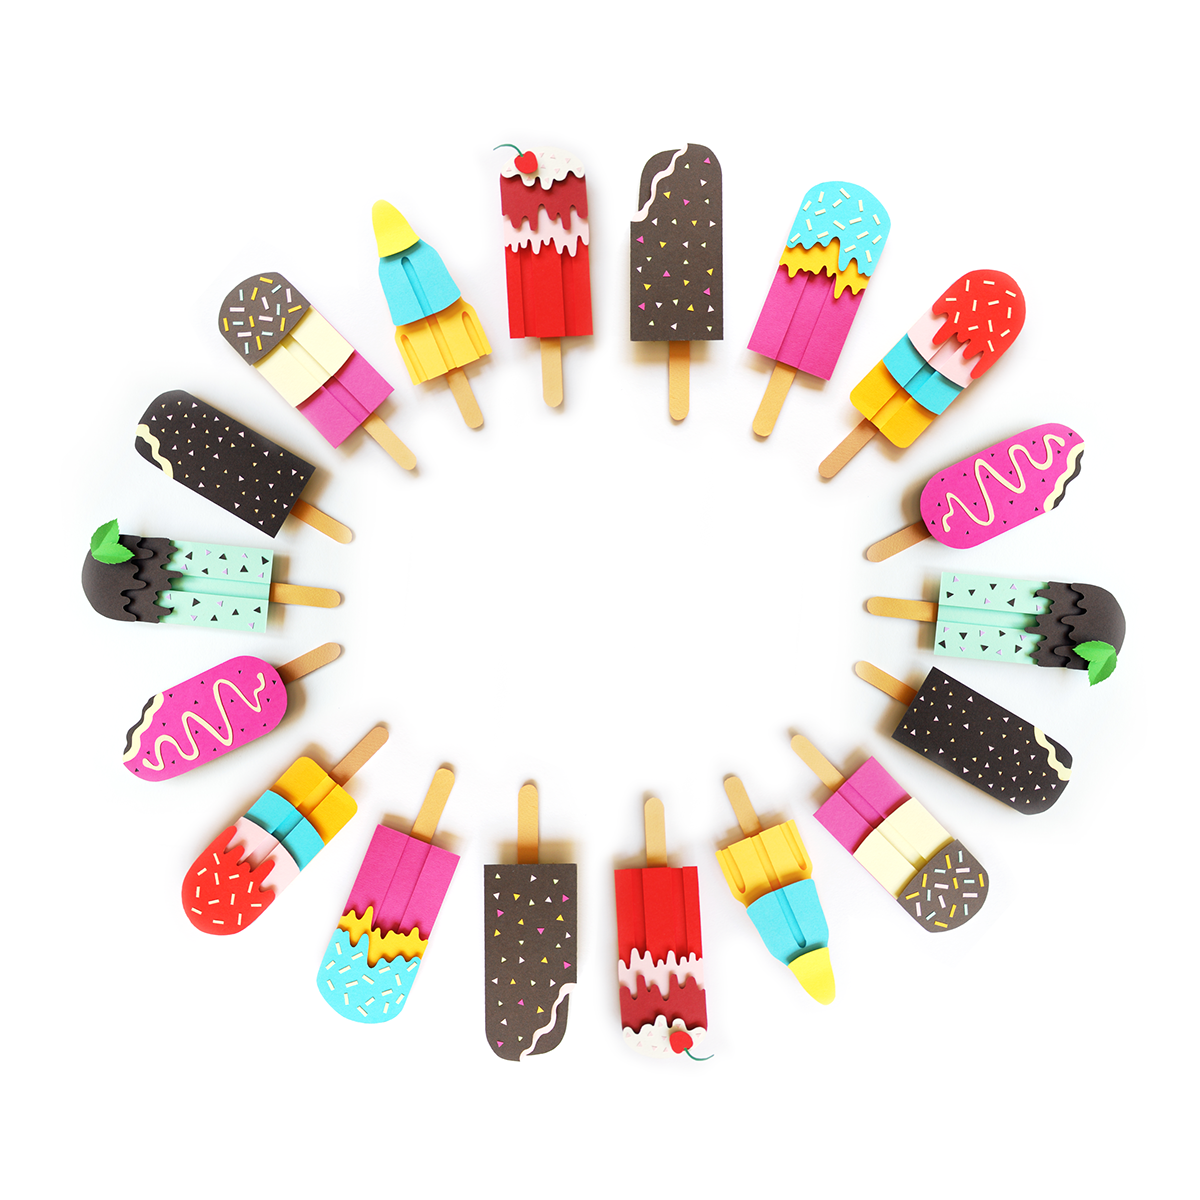 Paper Ice Lollies by Polly Lindsay - love these! Would make fun play ...